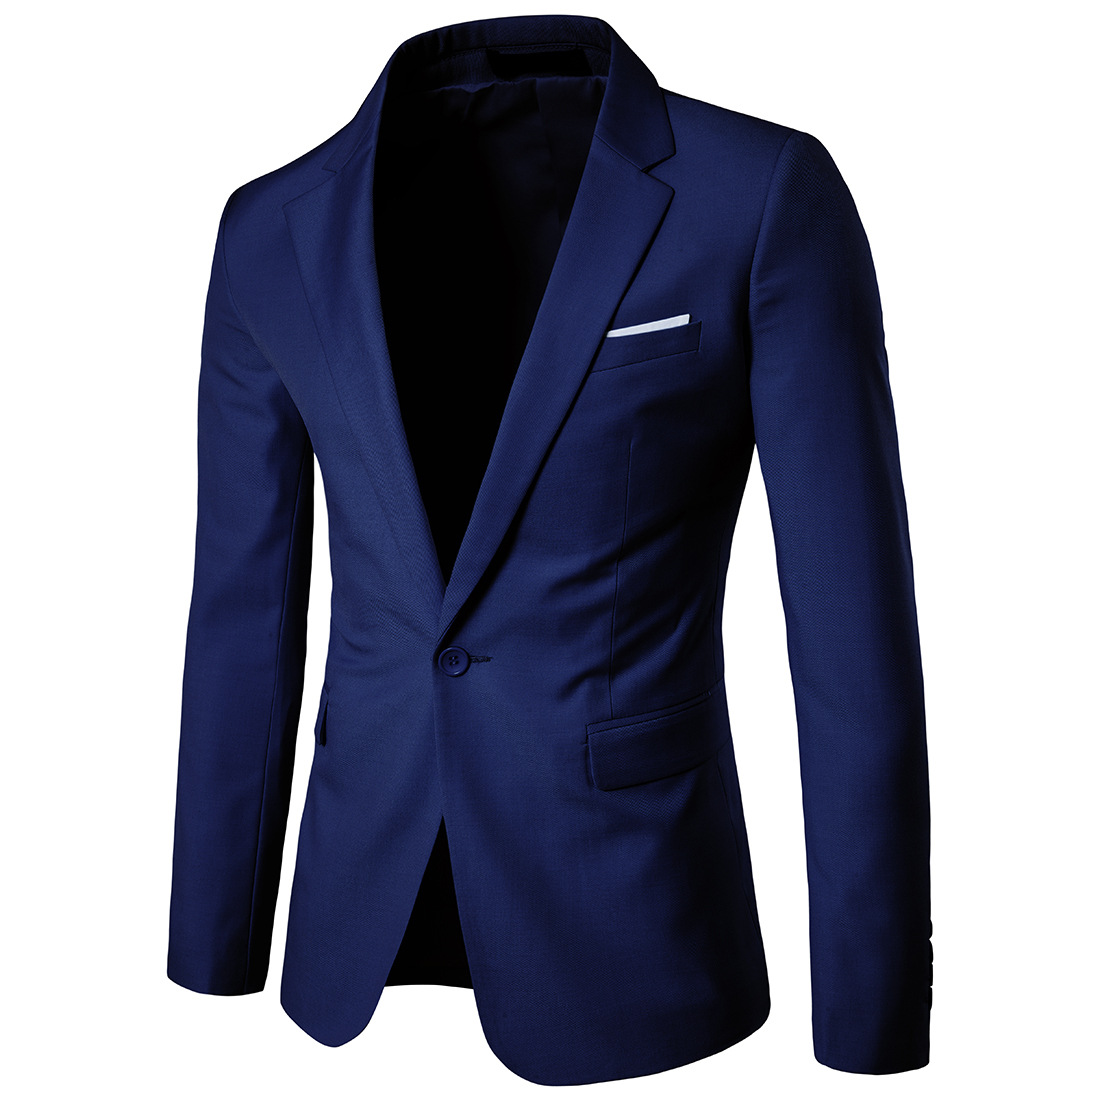 2019 Business Leisure Suit Lang Best Man Wedding One-Button Suit Jacket Men'S Wear 9-Color Xf001 Suit